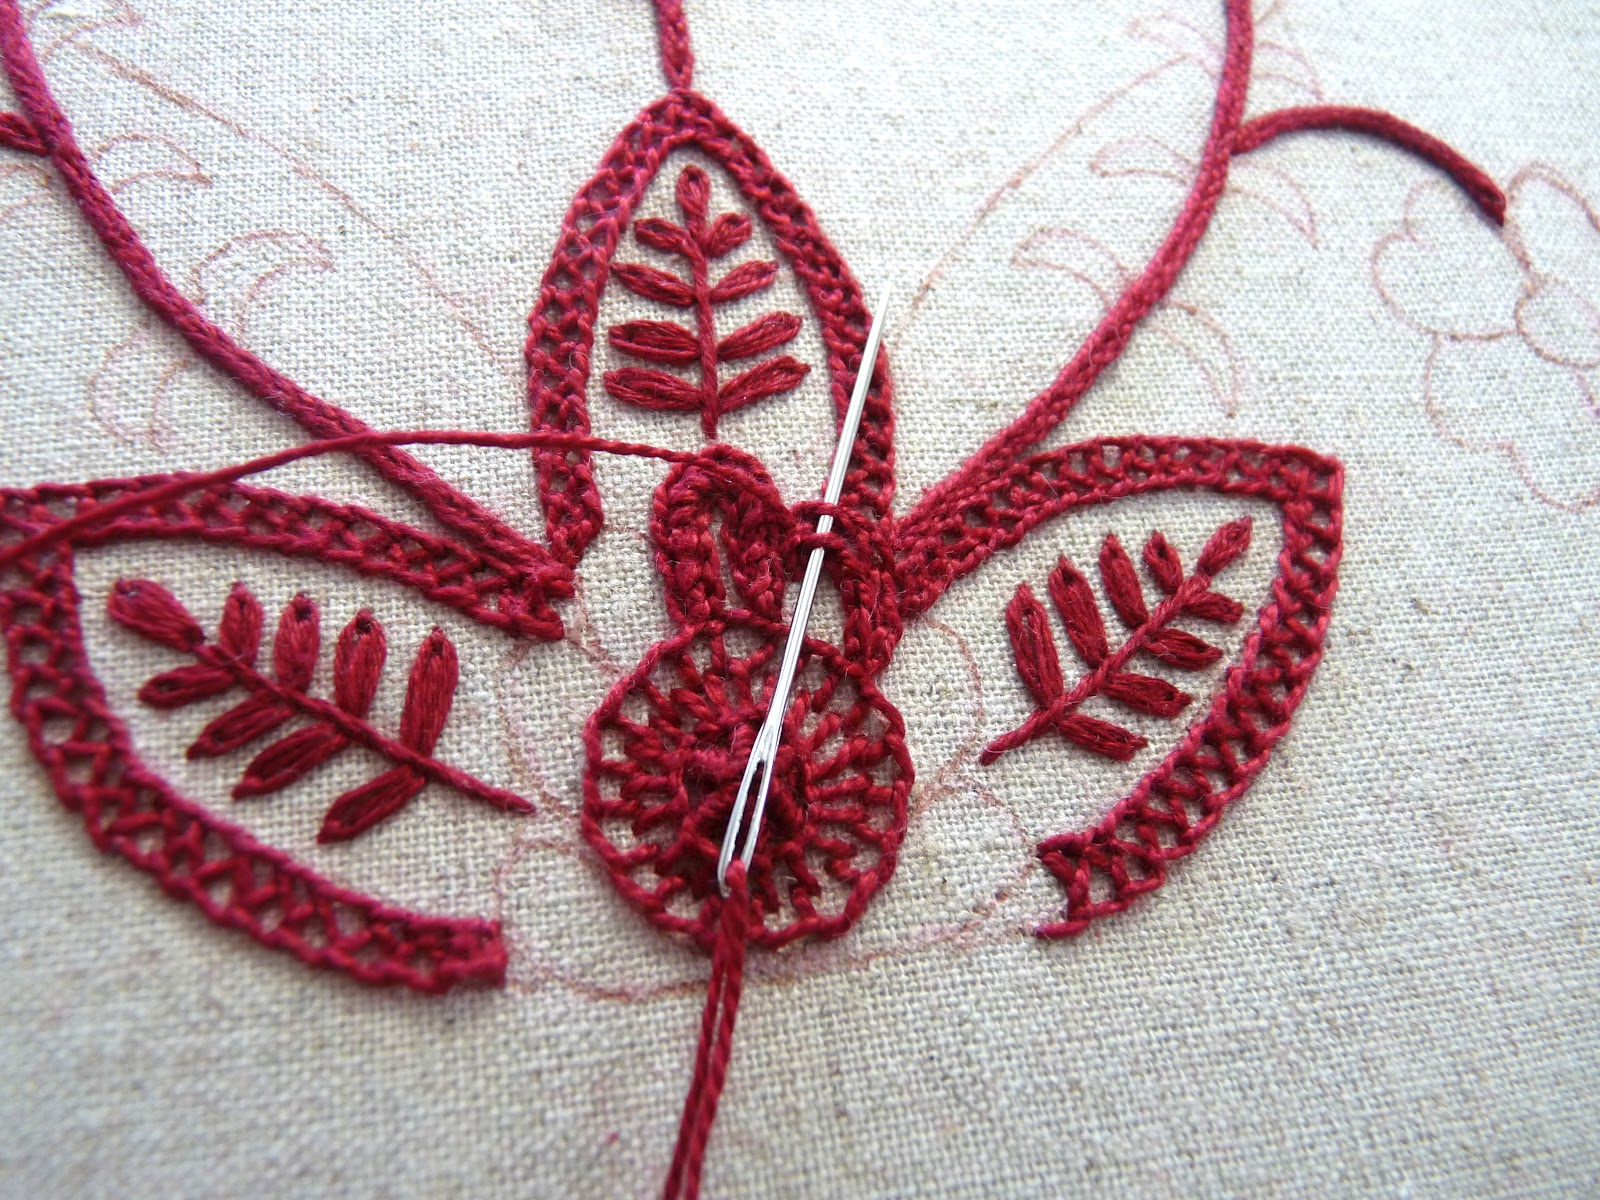 California Embroidery And Design